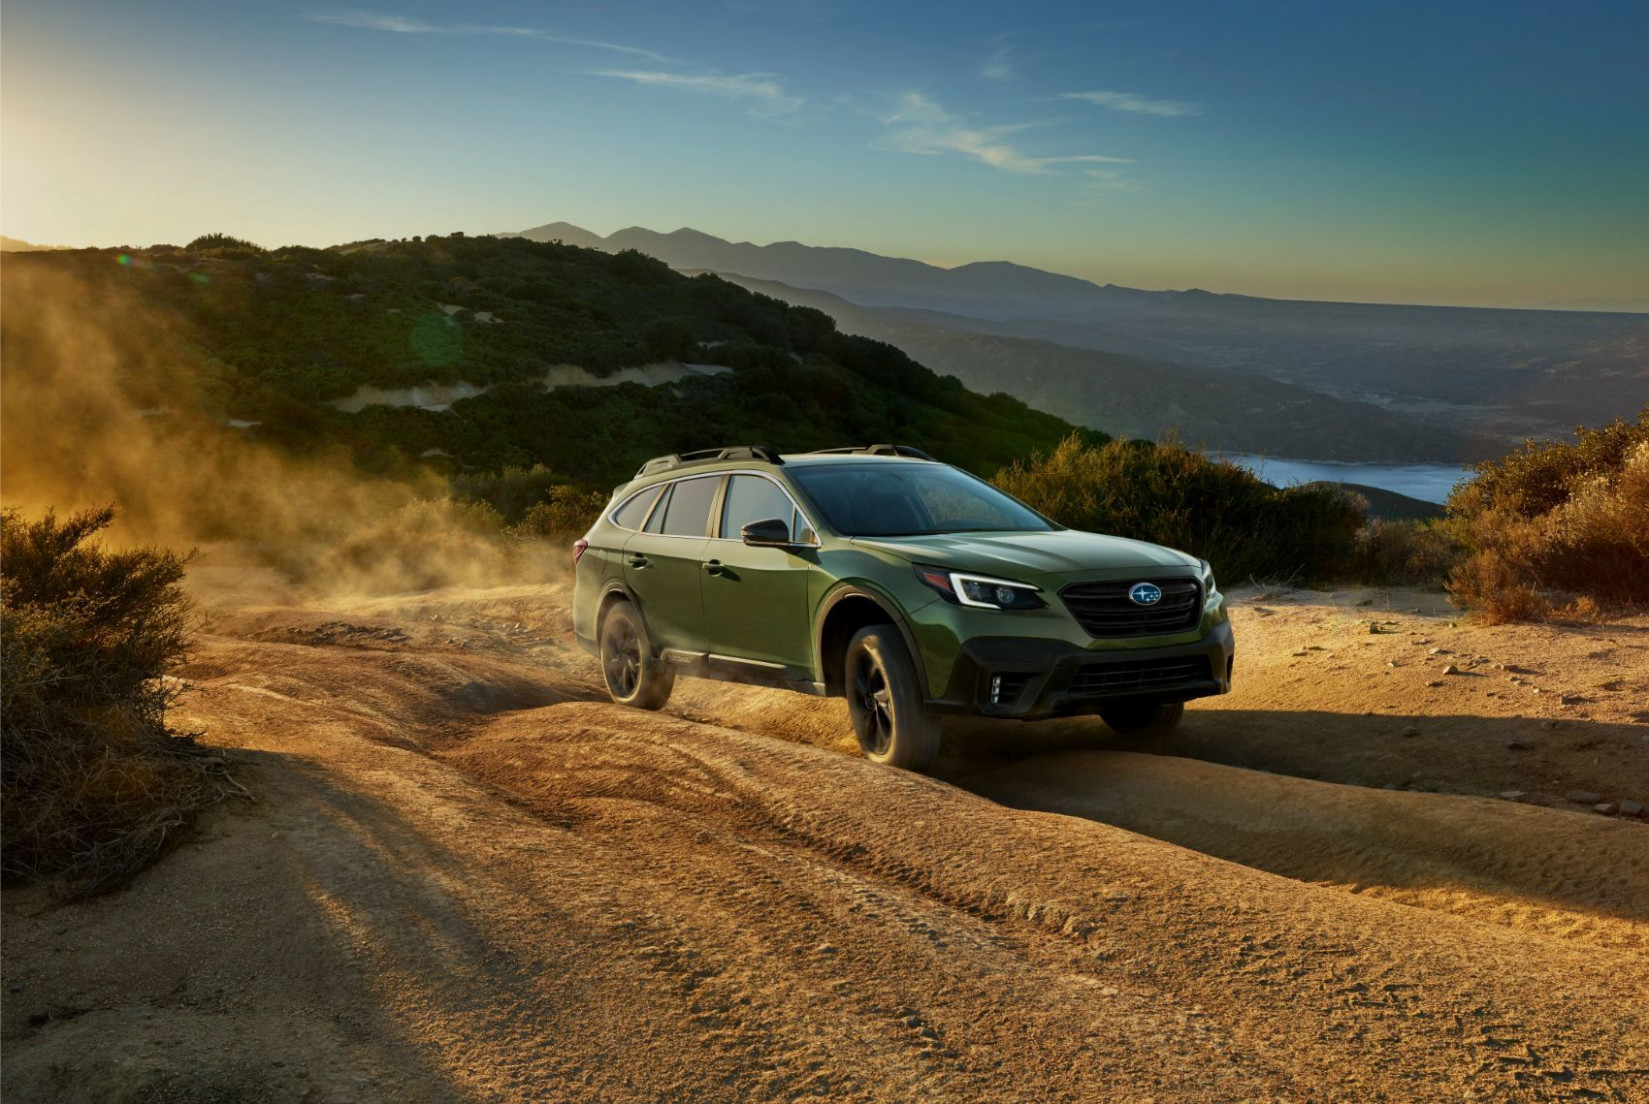 Subaru Warranty: A Guide To Protecting Your Vehicle